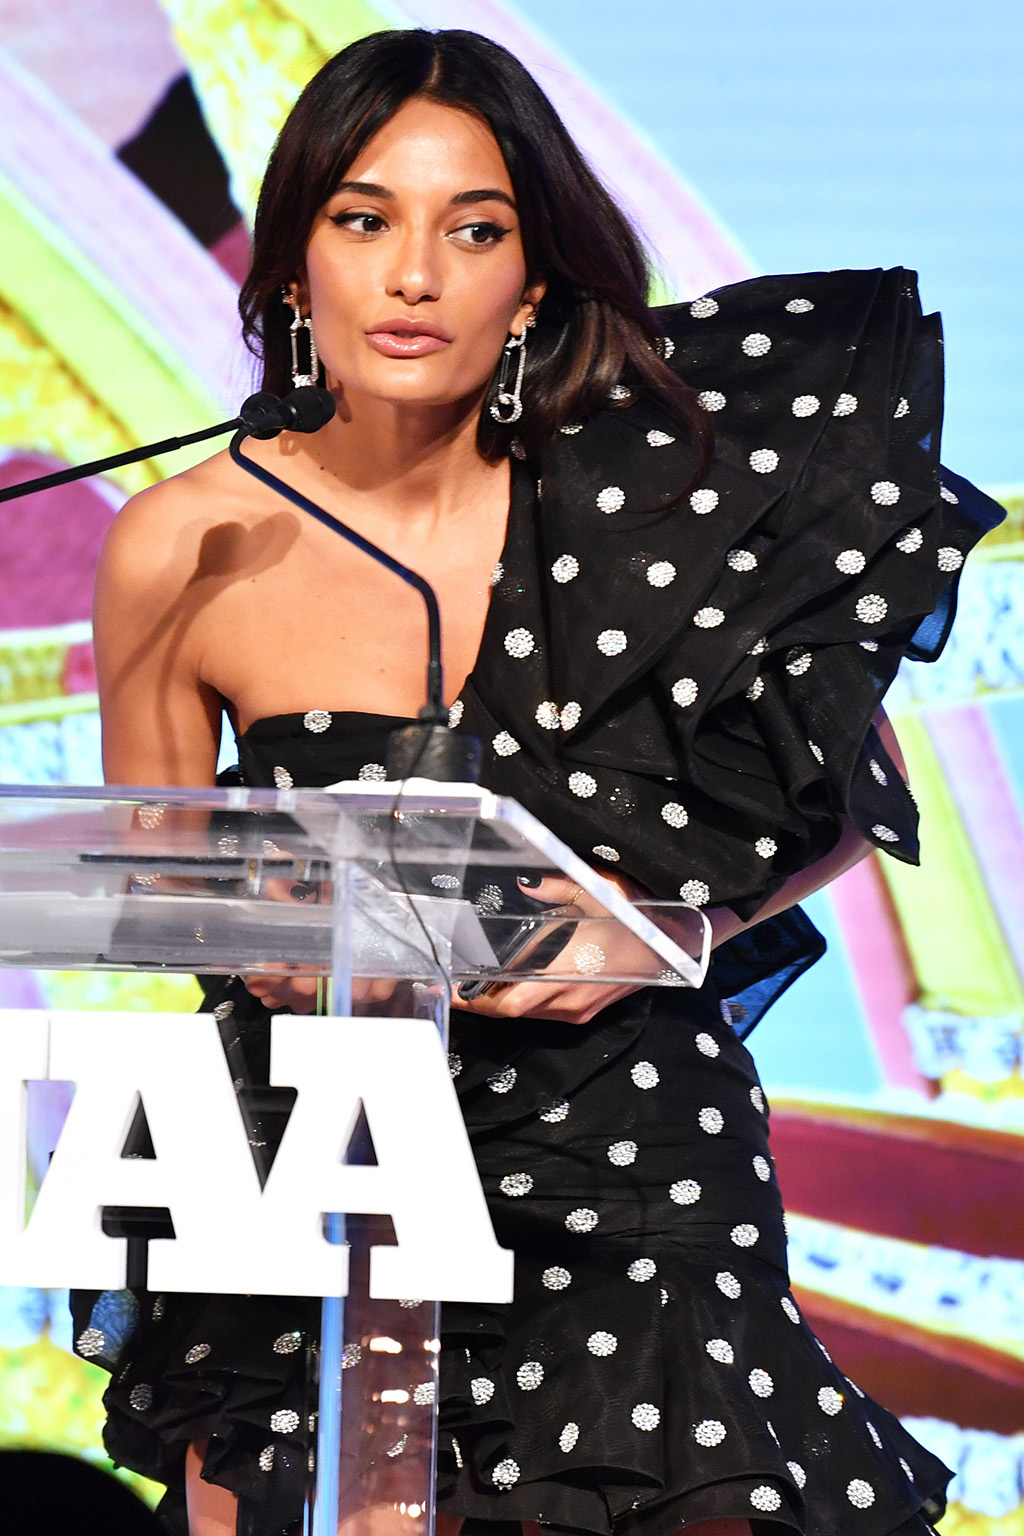 Amina Muaddi33rd Annual Footwear News Achievement Awards, Inside, New York, USA - 03 Dec 2019